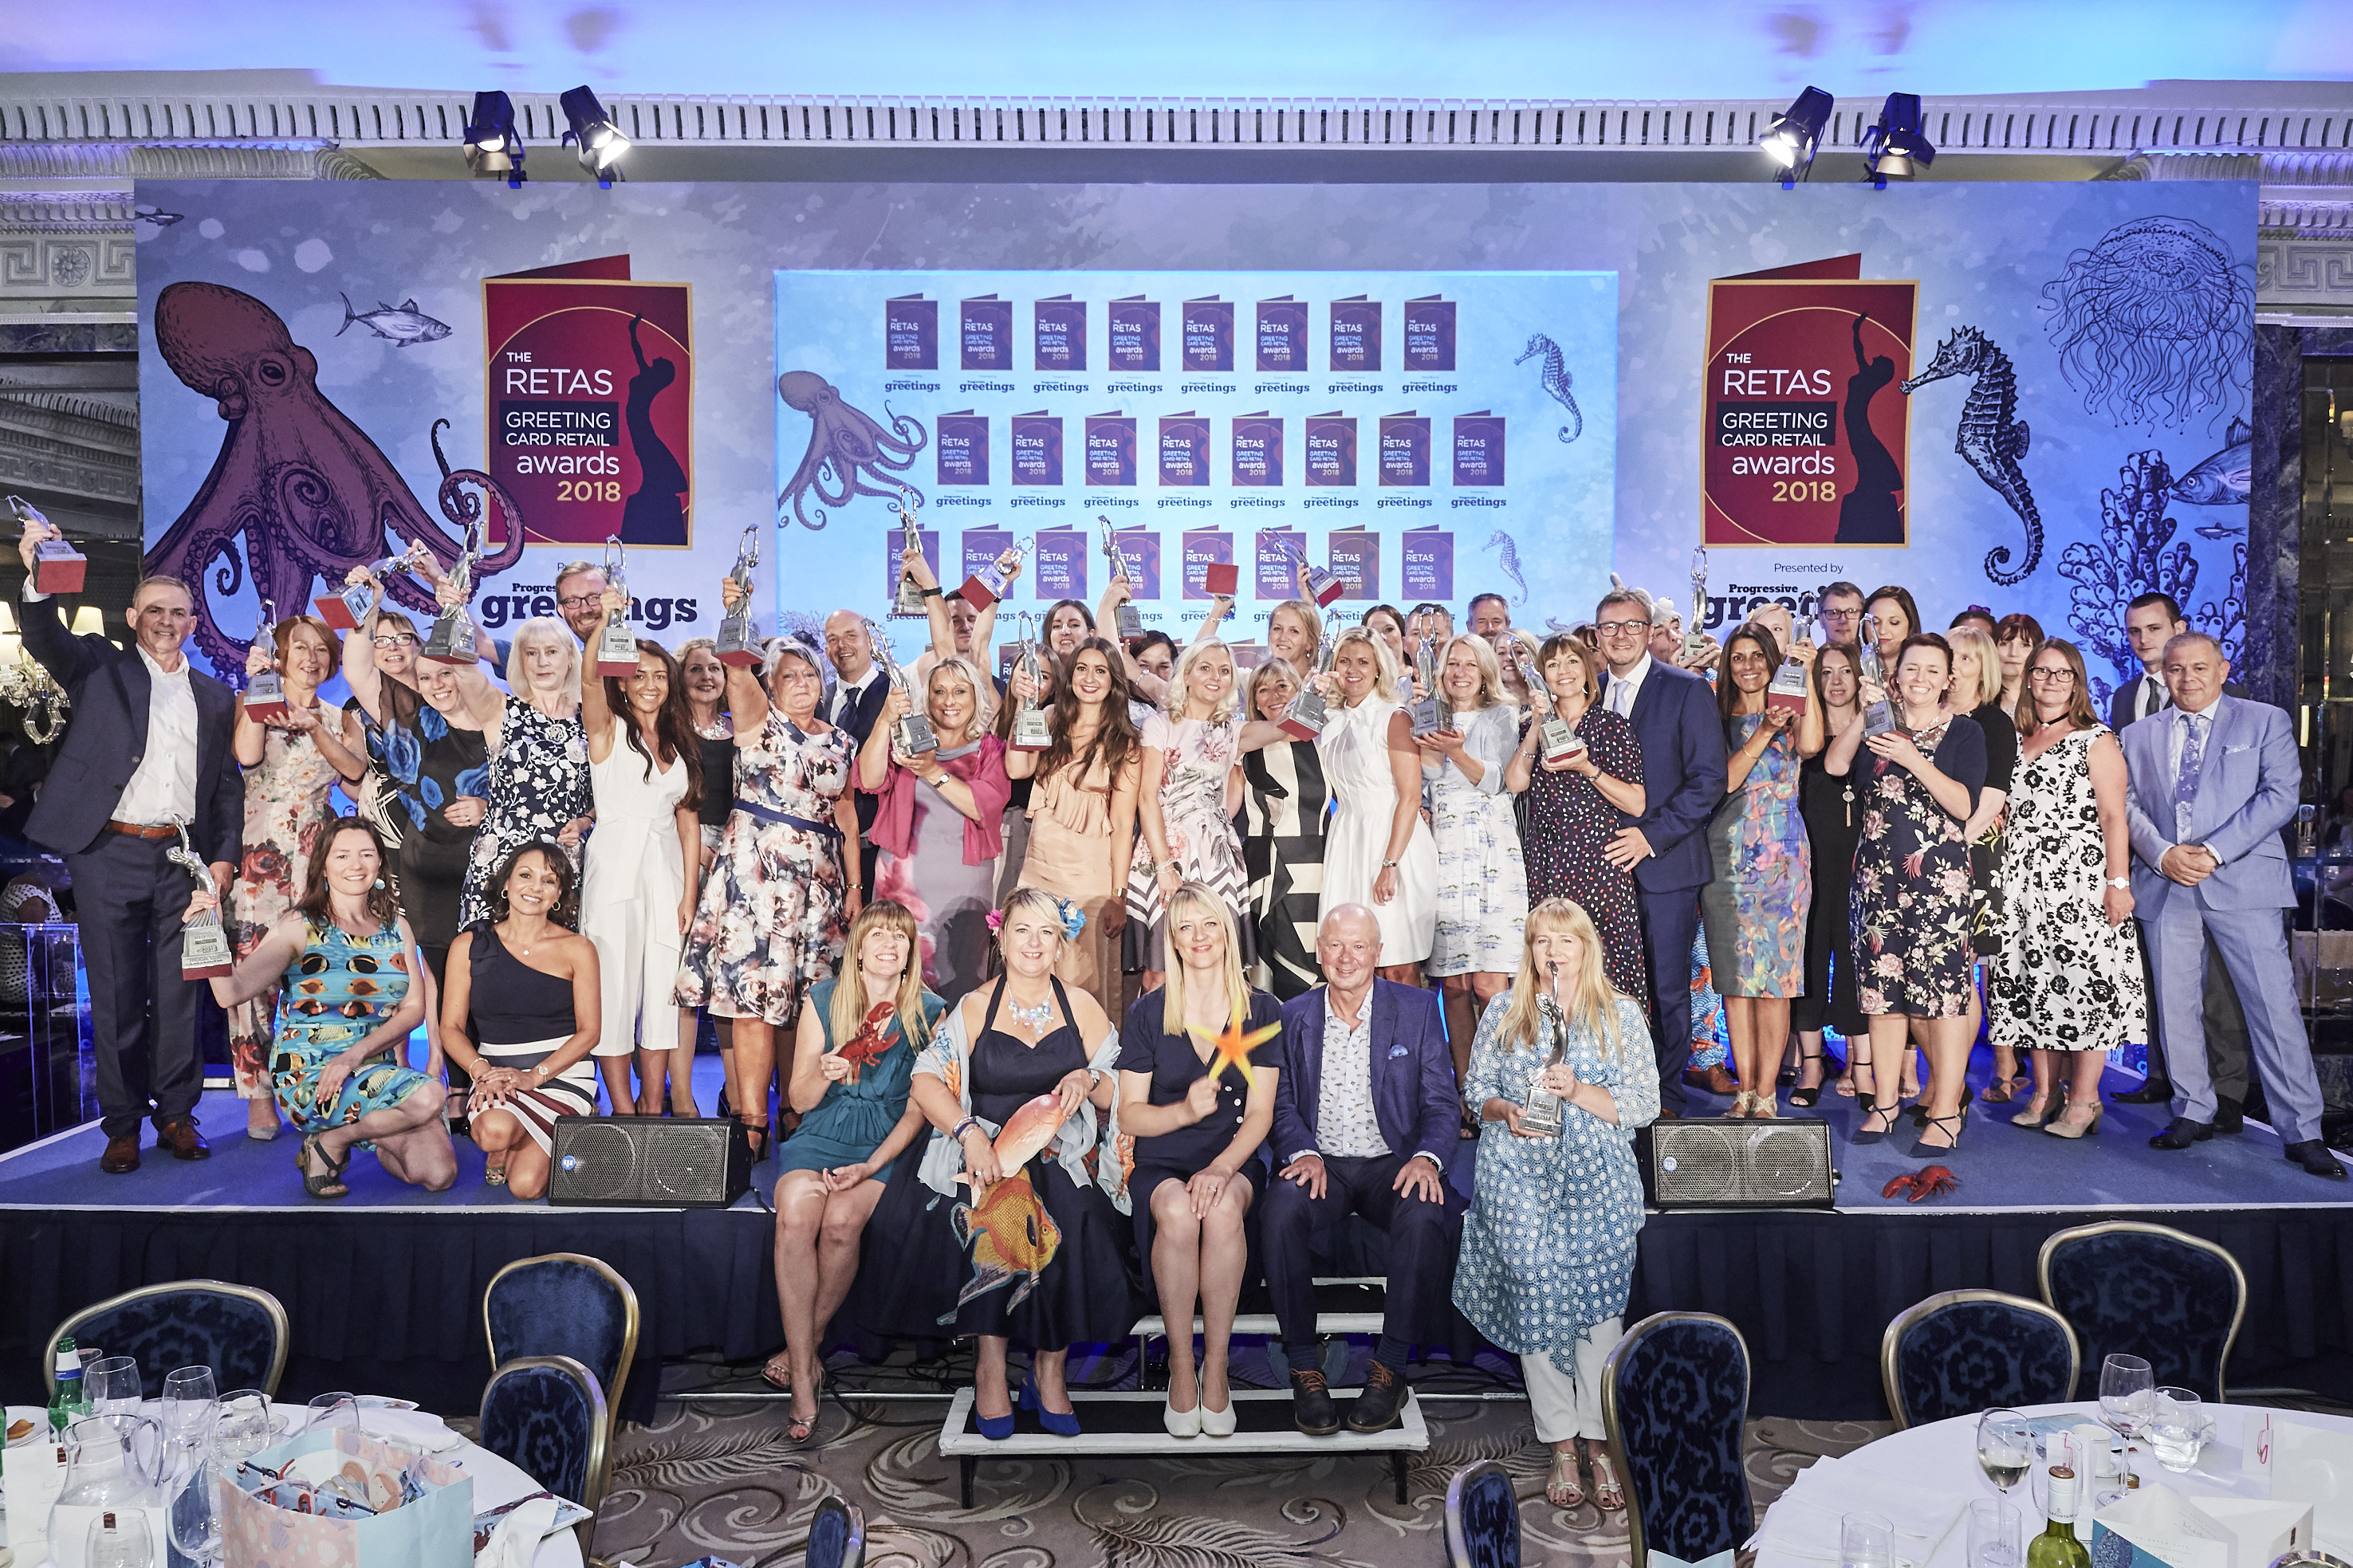 Above: All the winners of The Retas 2018 on stage at The Dorchester last July.